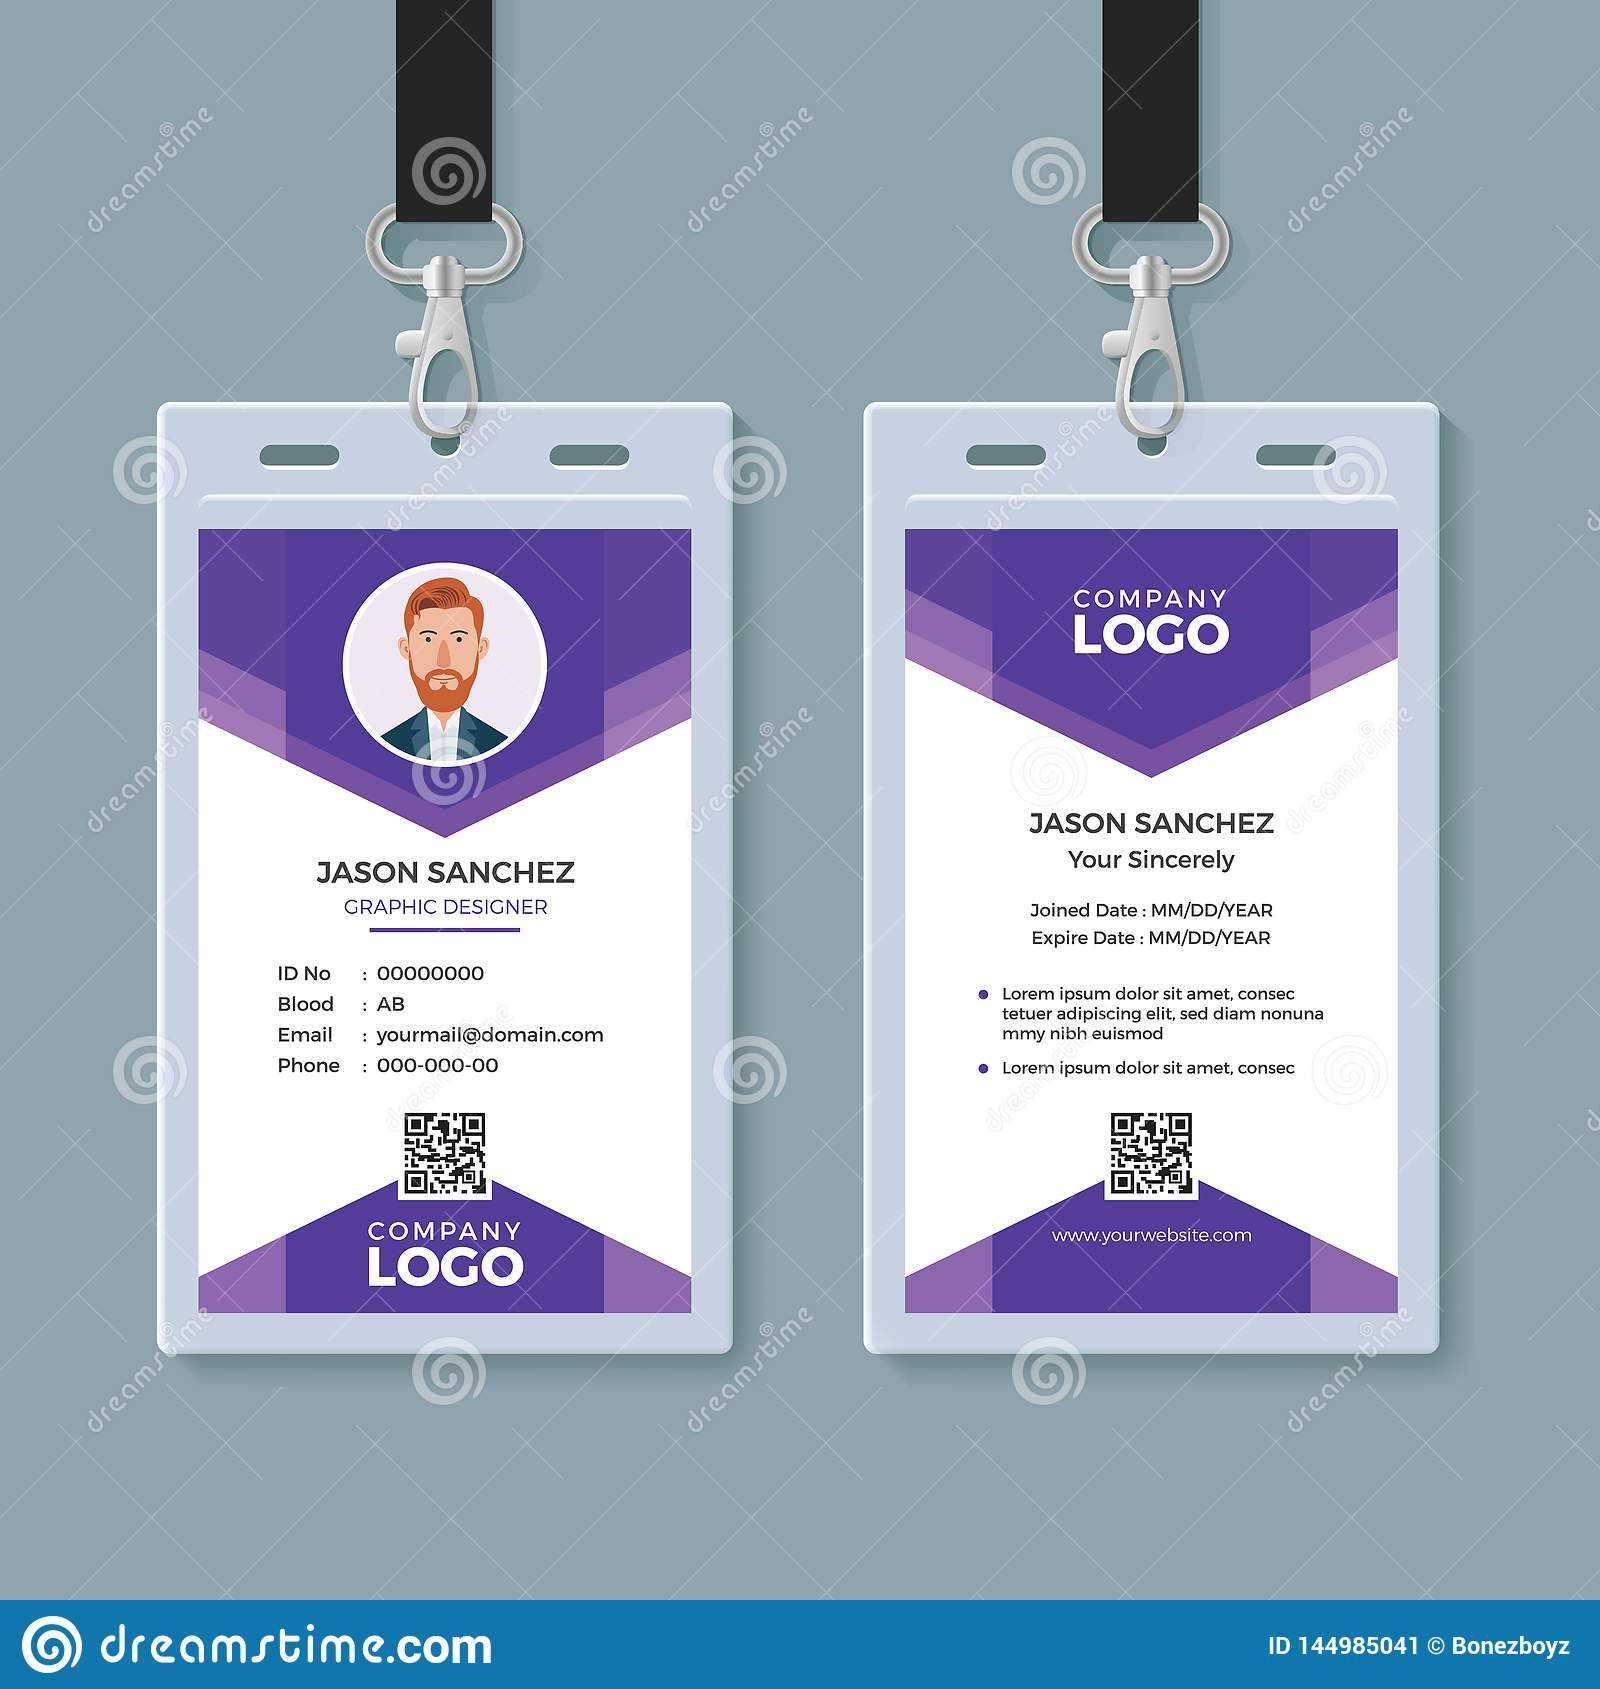 Creative Id Card Template Stock Vector. Illustration Of Pertaining To Conference Id Card Template